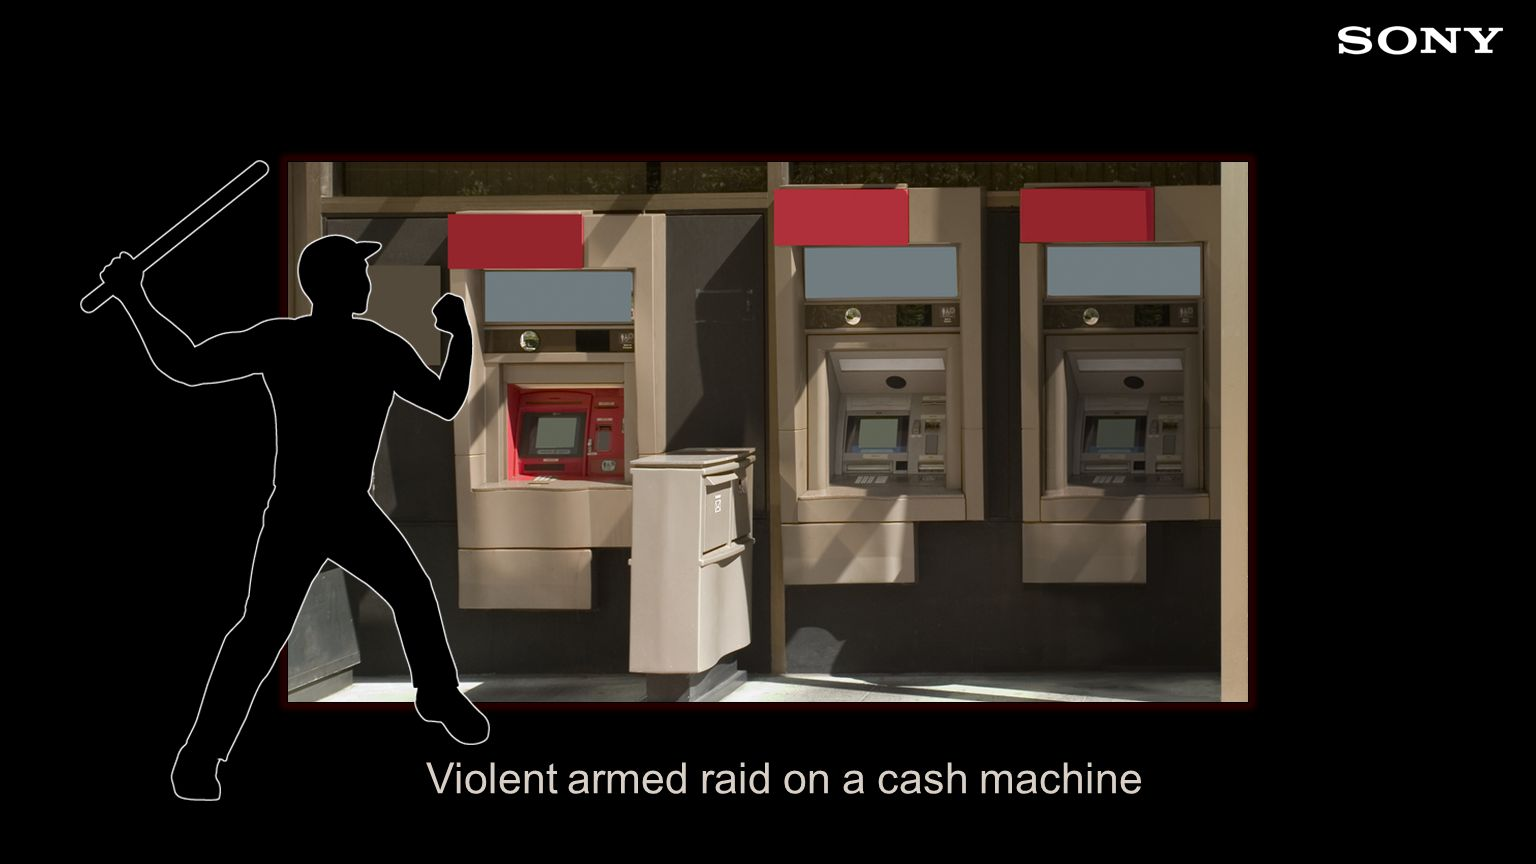 Violent armed raid on a cash machine